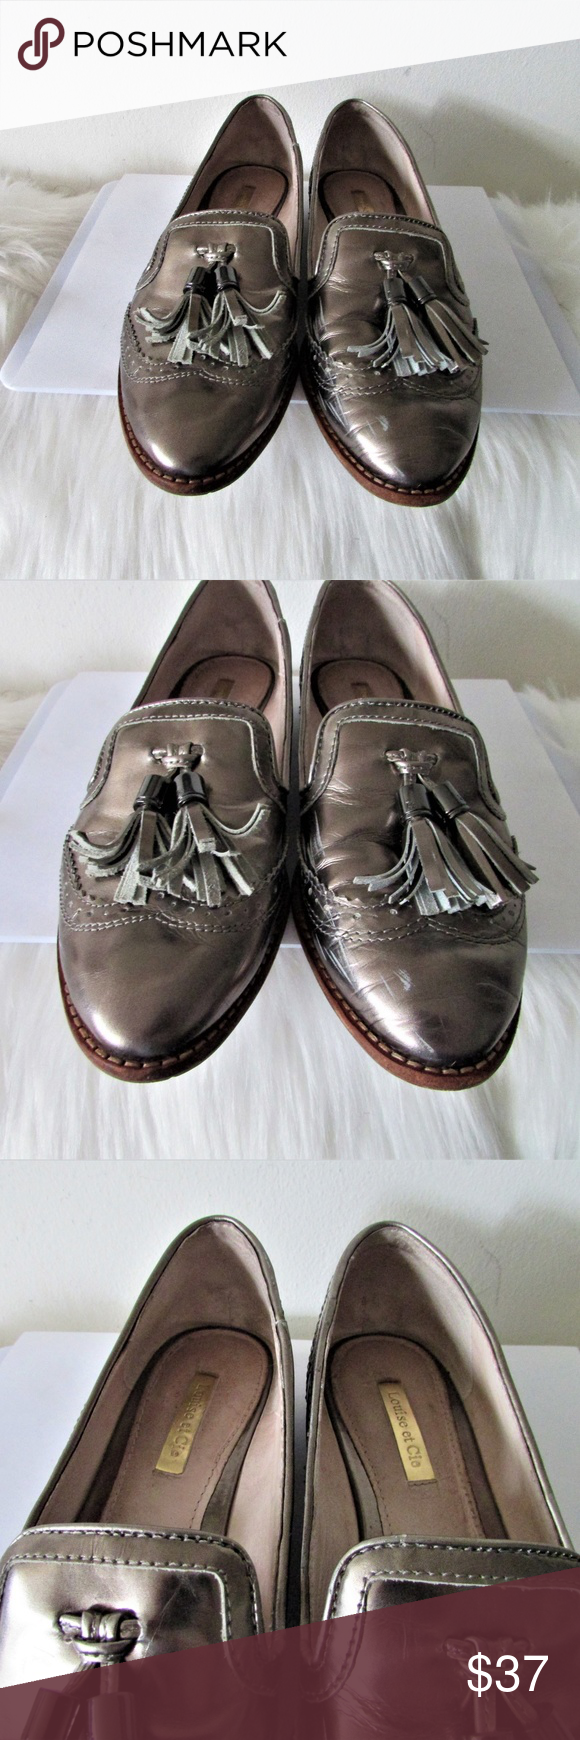 ddaf1fca314 Louis et Cie Lo-Joey silver patent loafers 7.5 M leather upper please note  scuffs throughout Louis et Cie Shoes Flats   Loafers